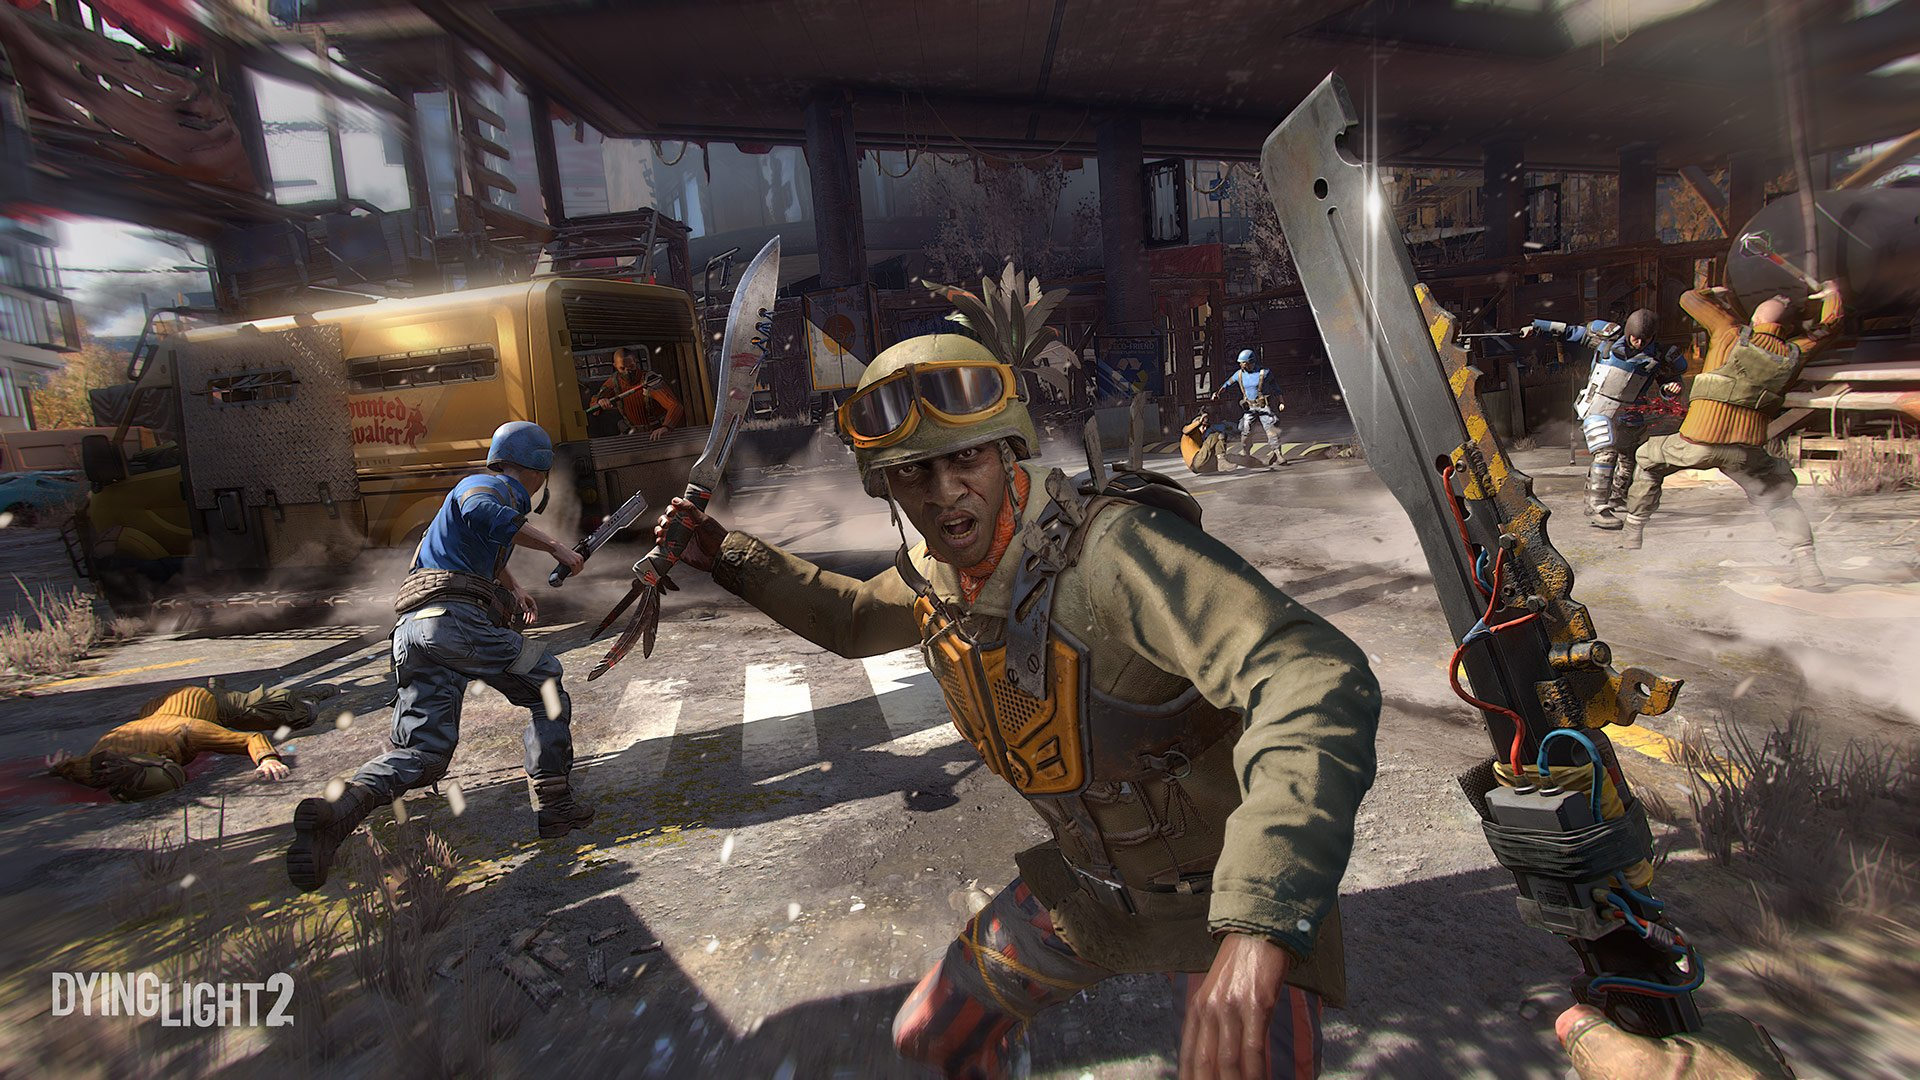 Dying Light 2 has been delayed again and is now planned for 2022 | VGC